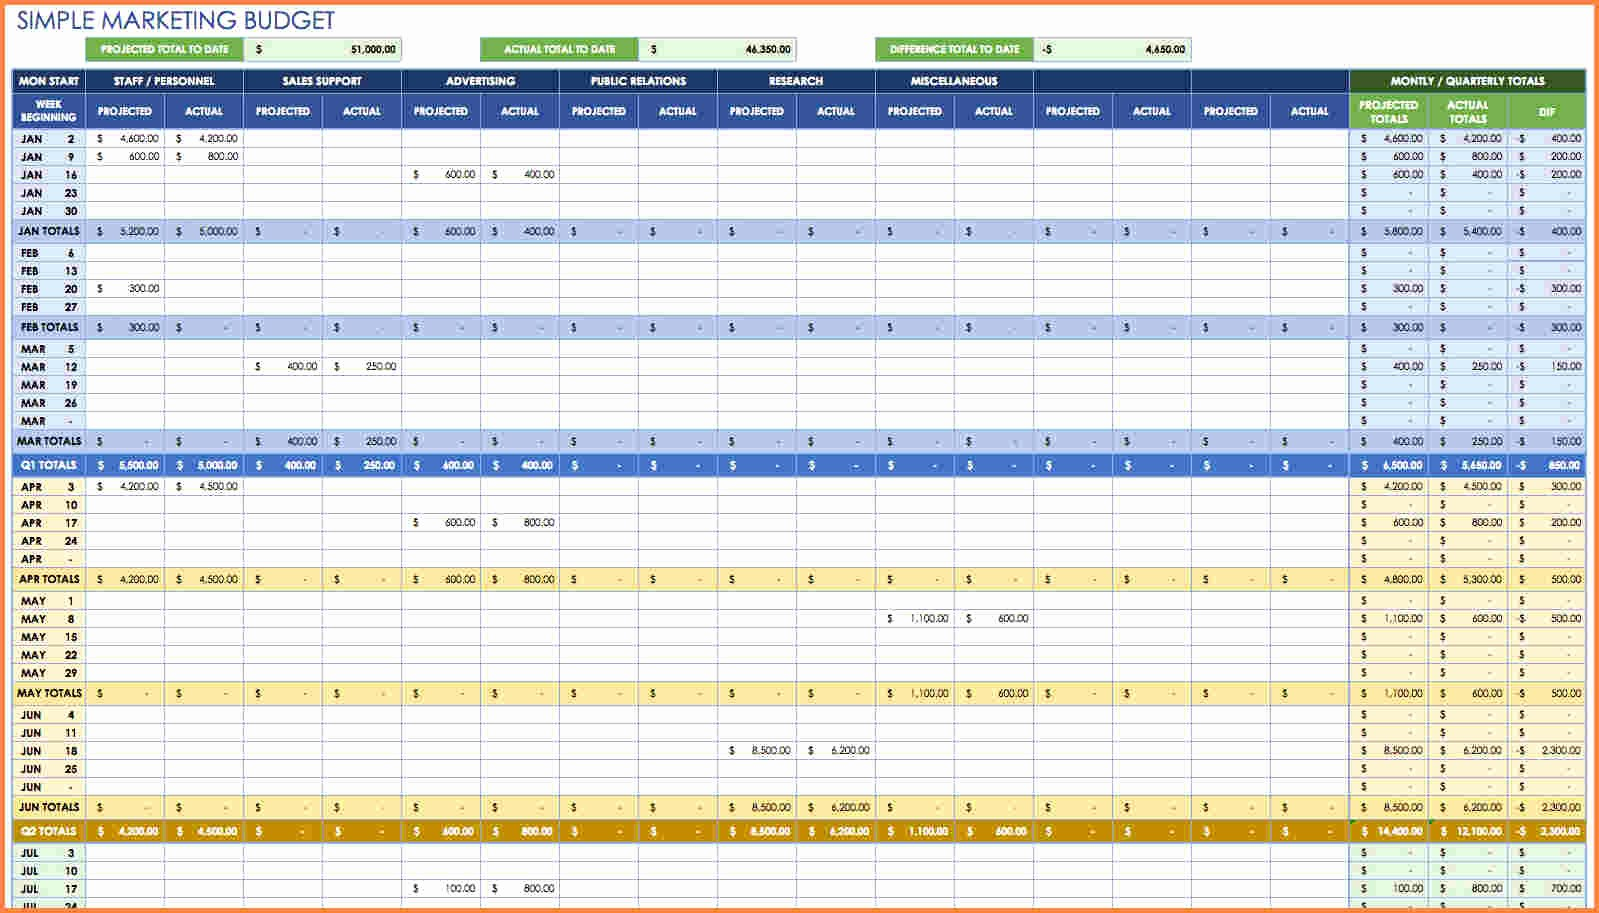 Monthly Expenses Spreadsheet Template Excel Best Of 10 Monthly Expenses Spreadsheet Template Excel